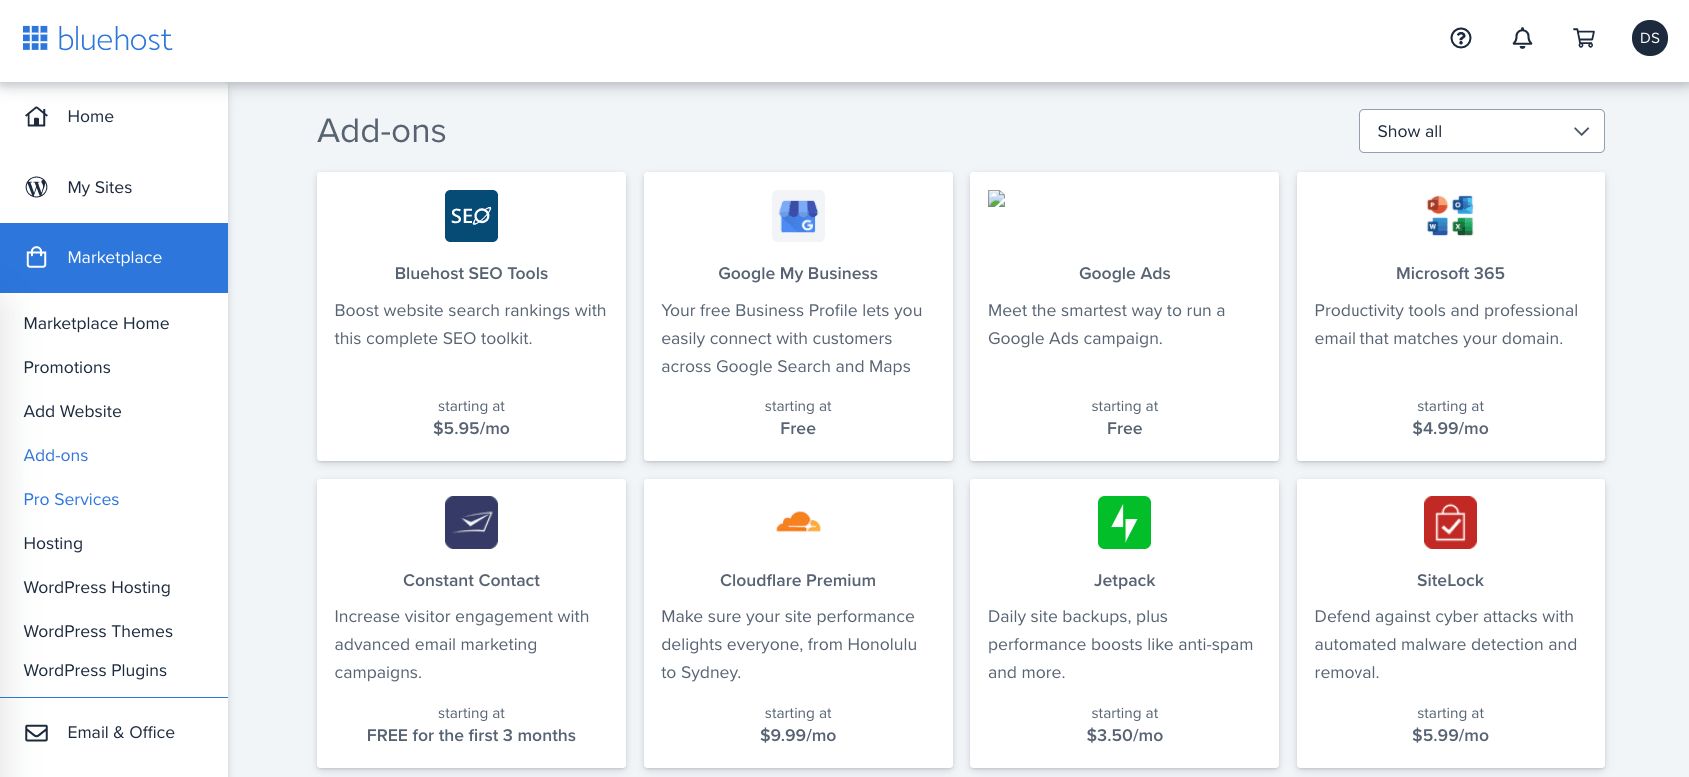 Bluehost hosting add-ons